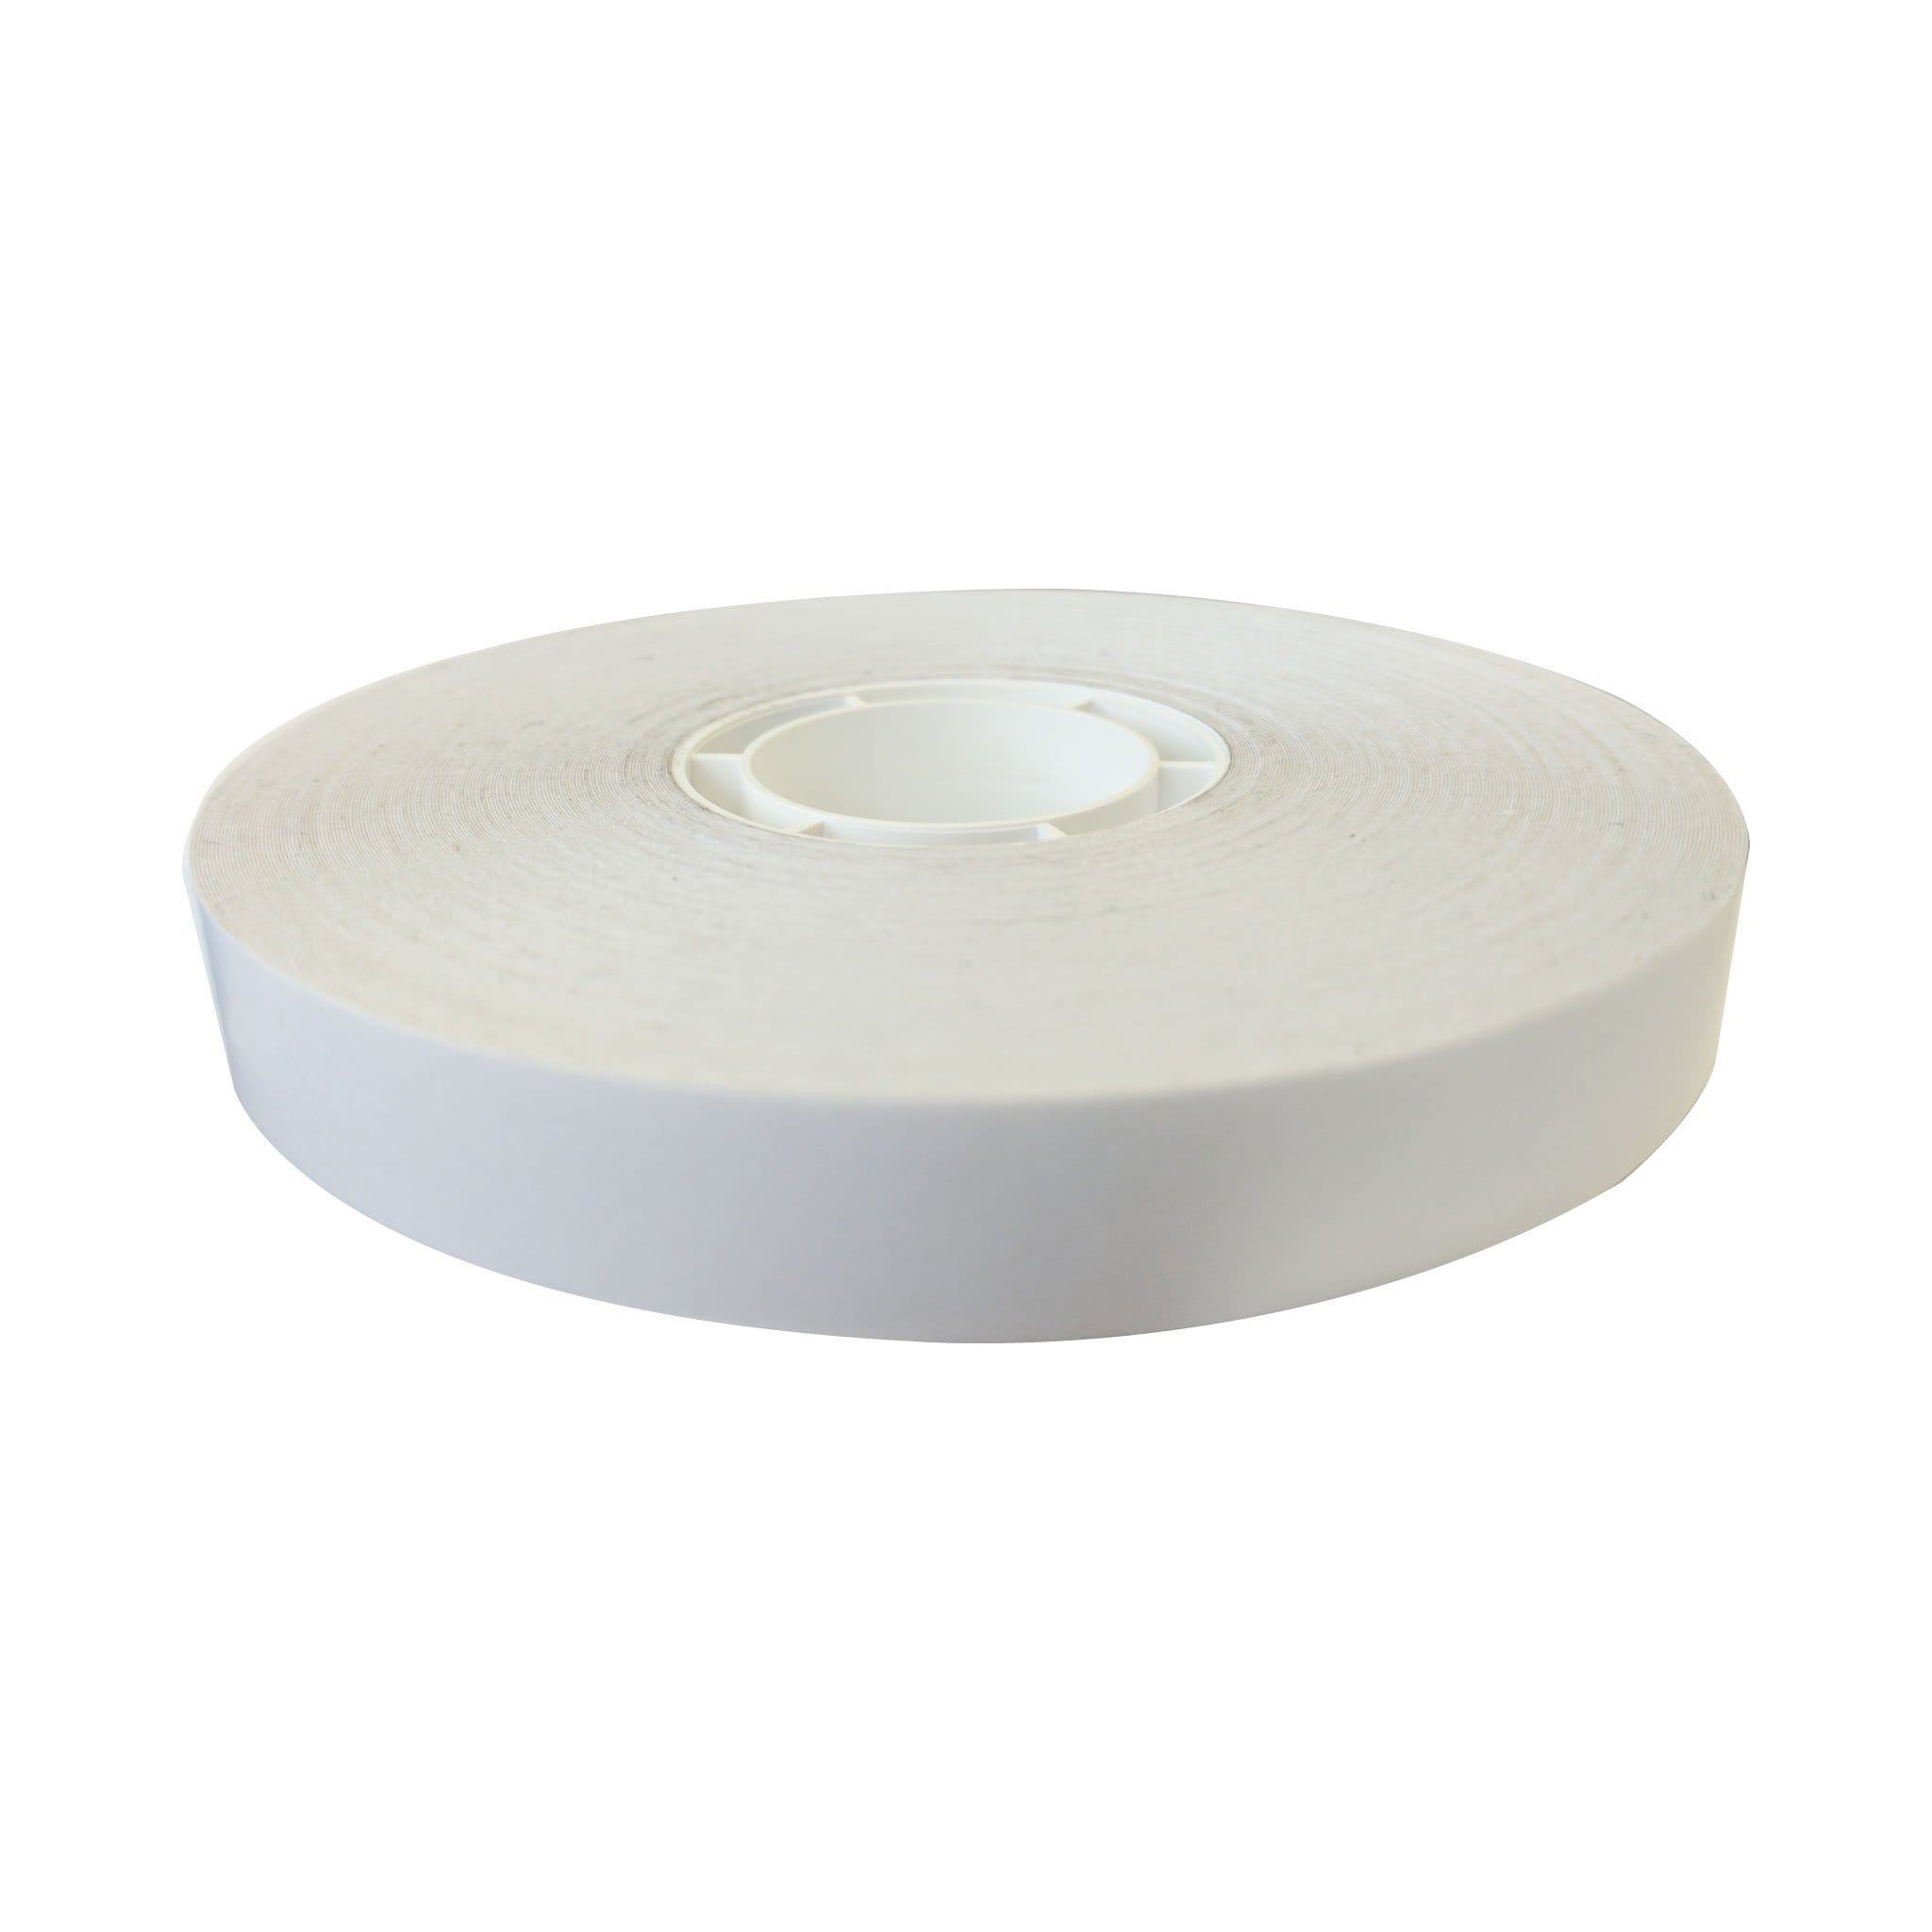 "Archival ATG Tape - 1/2"" x 33yds"